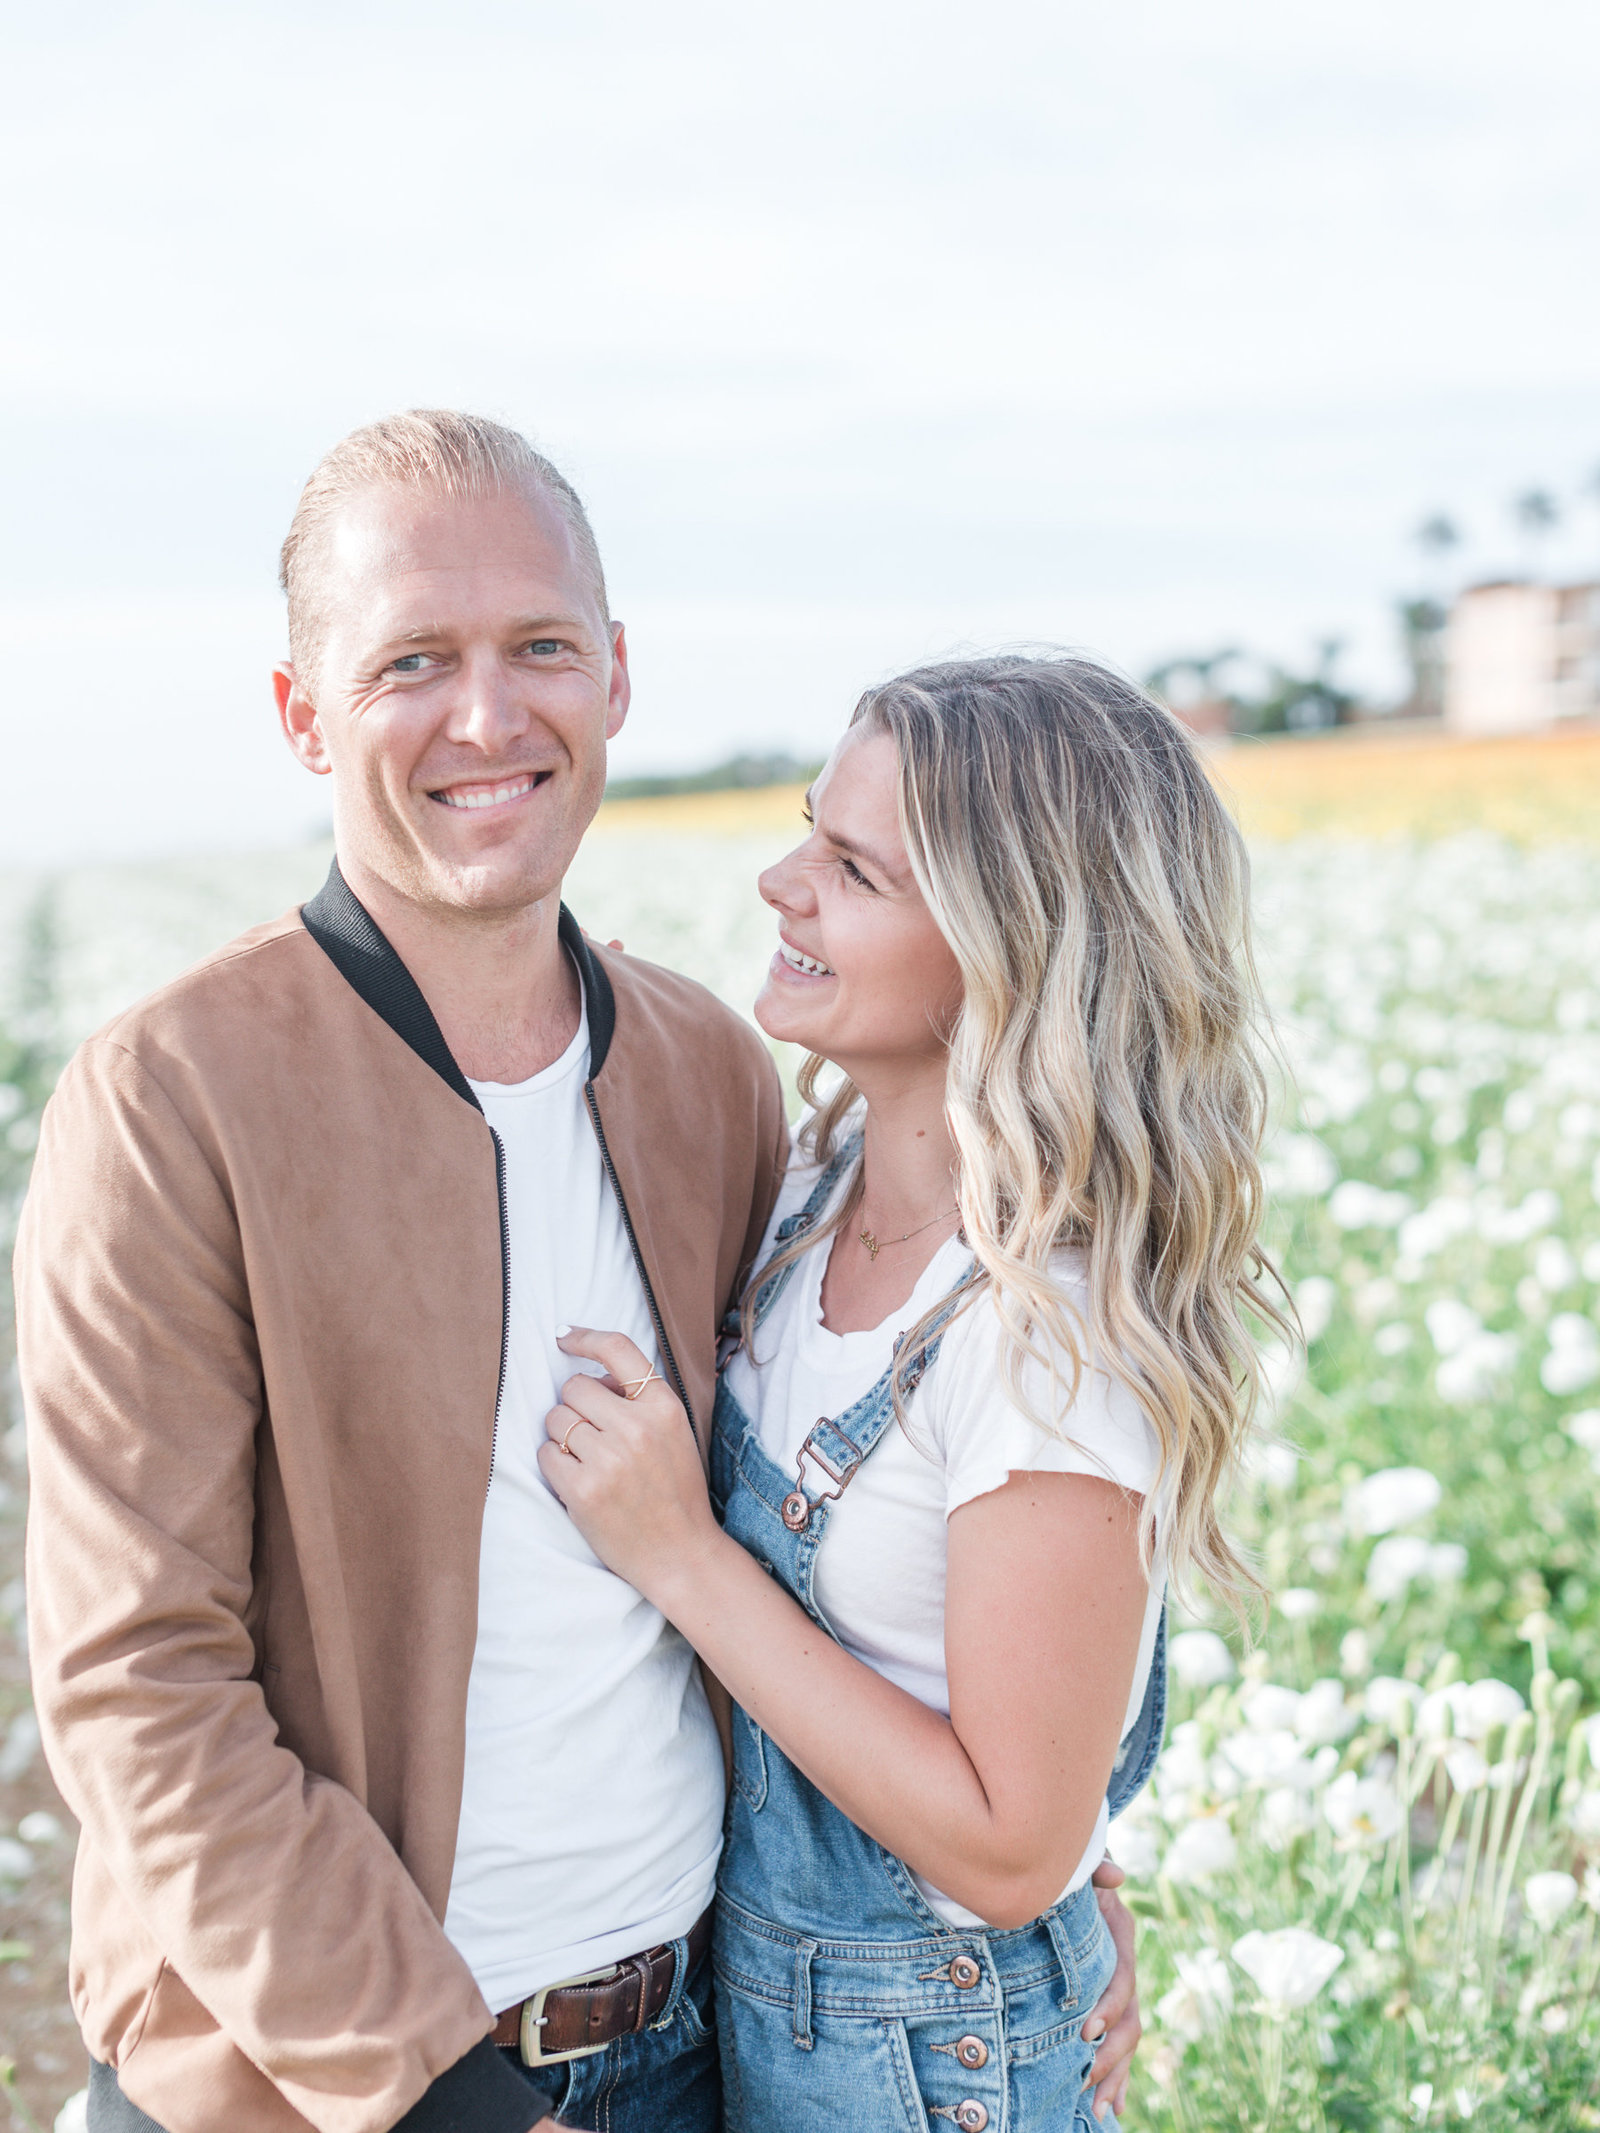 20180221-Pura-Soul-Photo-Encinitas-Engagement-Shoot-3